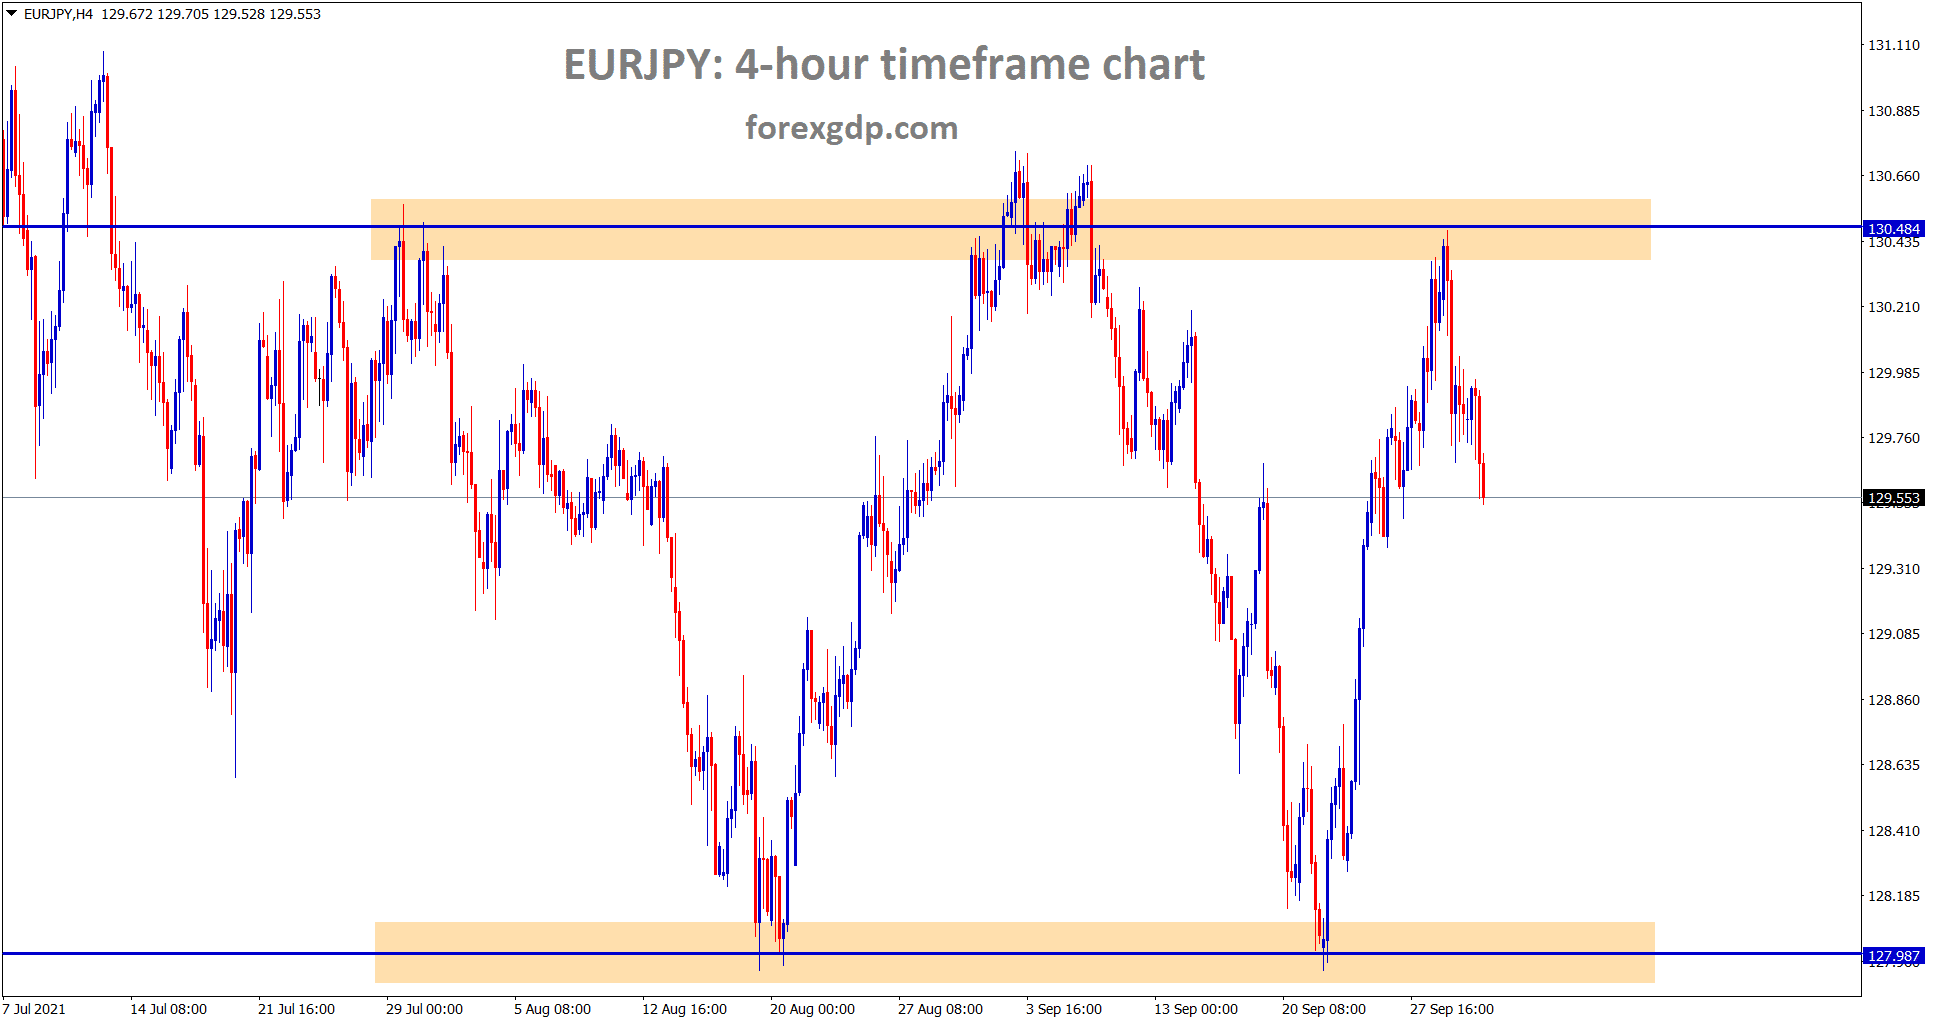 EURJPY is falling from the resistance for a correction